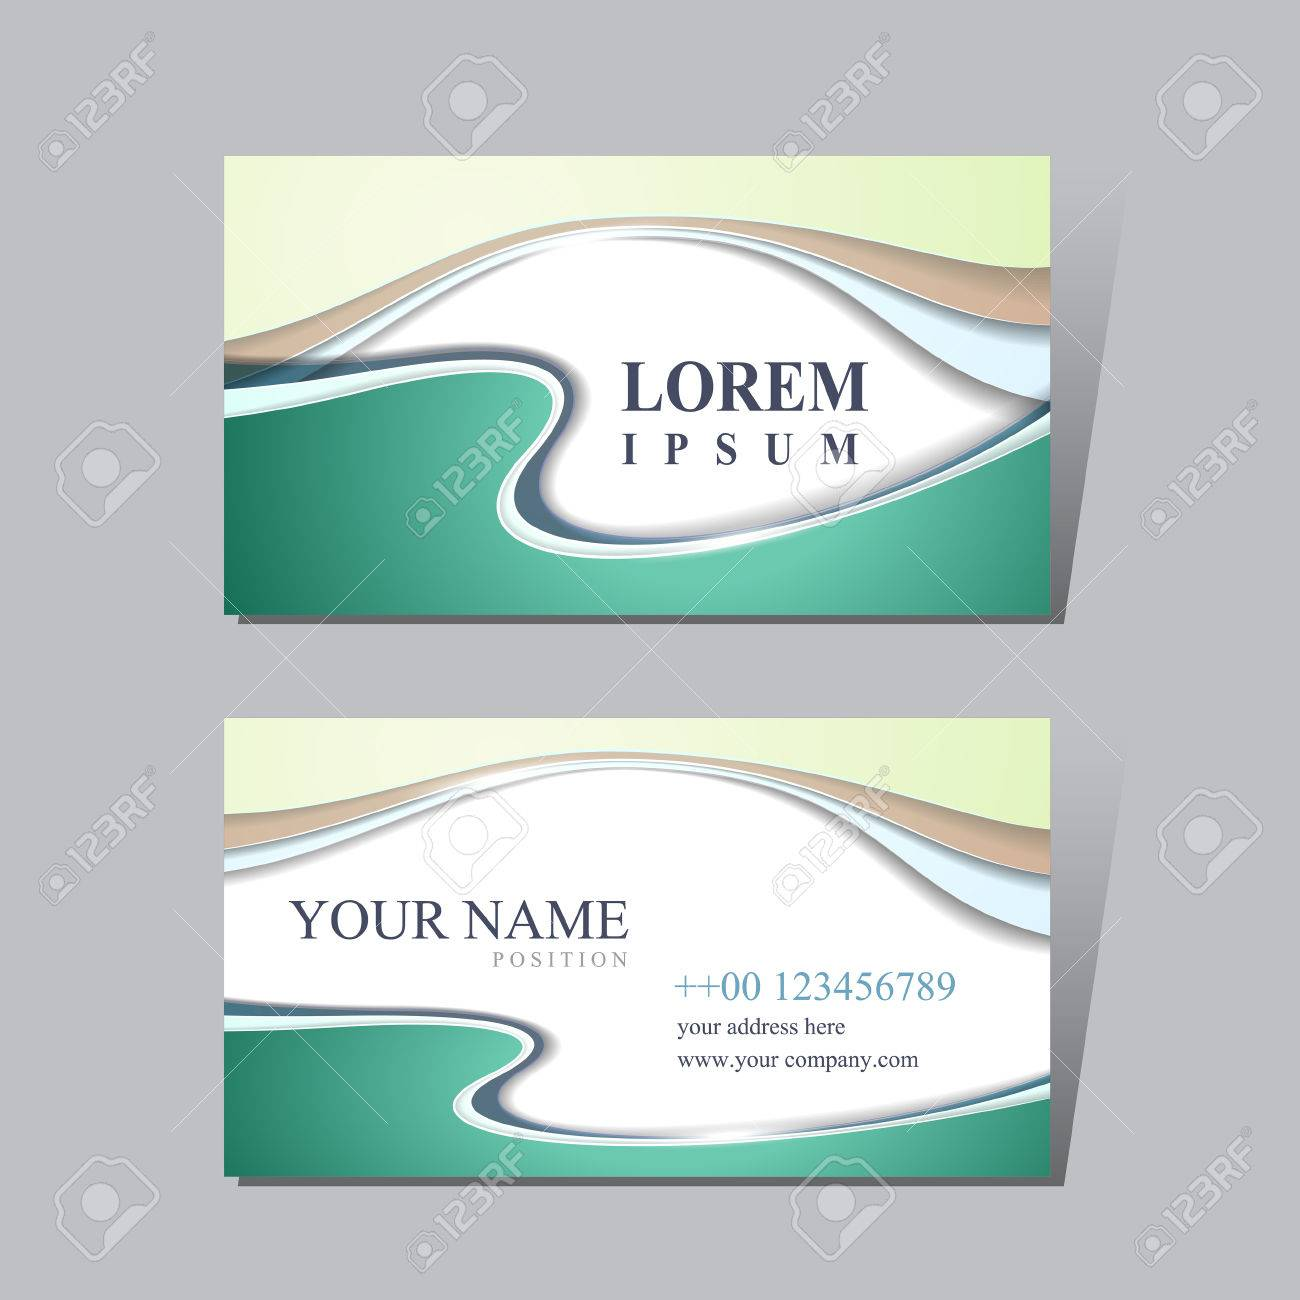 Modern business card design template with glossy wave elements modern business card design template with glossy wave elements stock vector 41859558 reheart Images